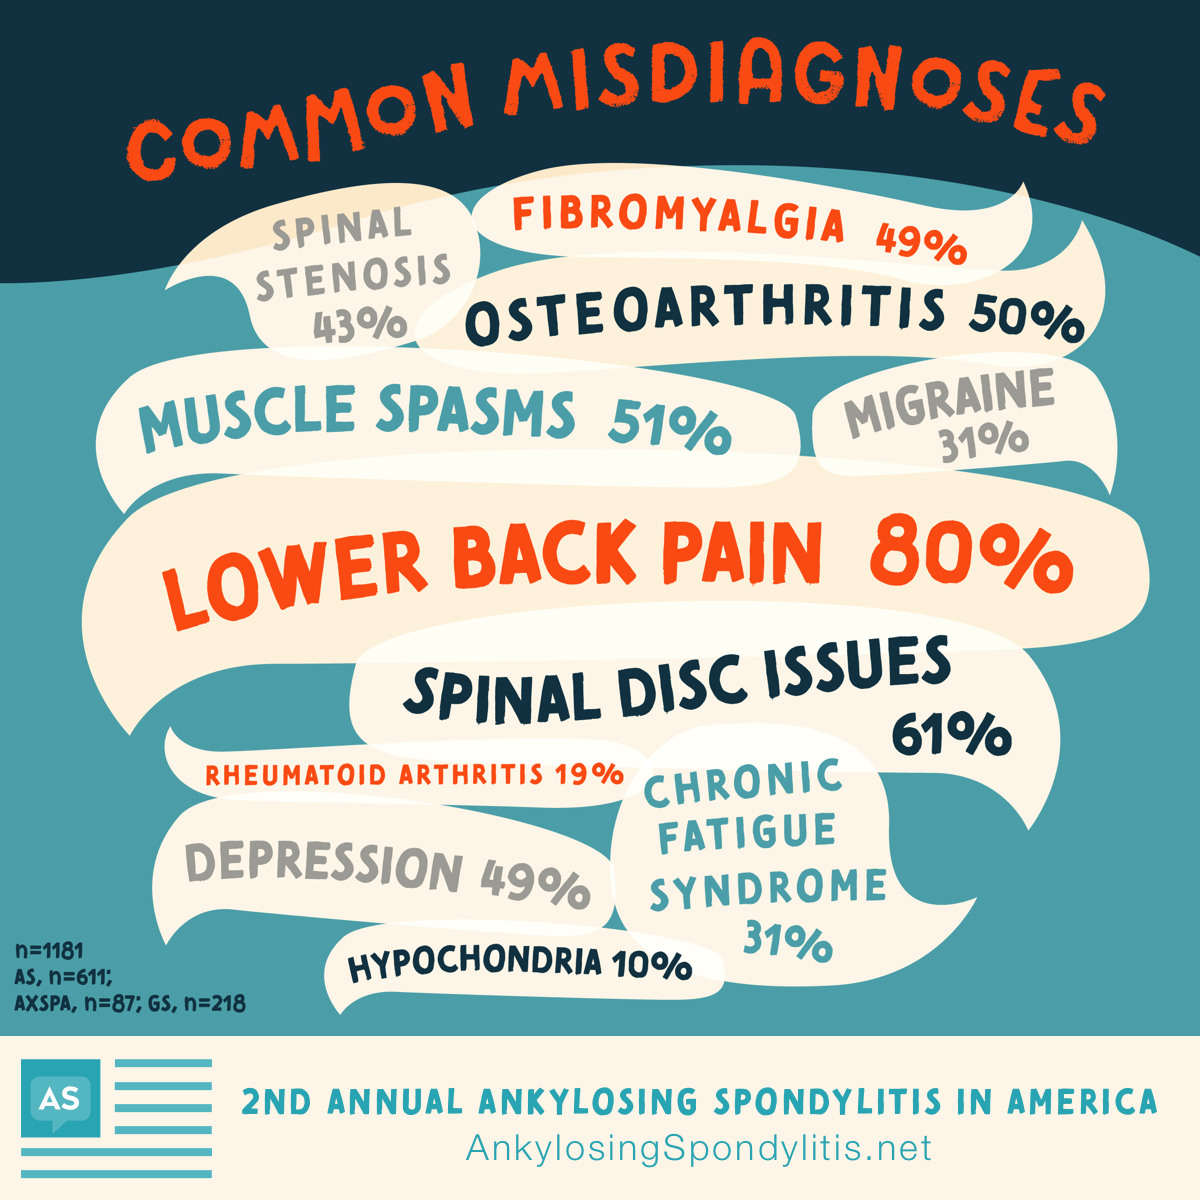 Data shows that people were misdiagnosed with low back pain (80%), spinal disc issues (61%), muscle spasms (51%), osteoarthritis (50%), depression (49%), fibromyalgia (49%) and spinal stenosis (43%)